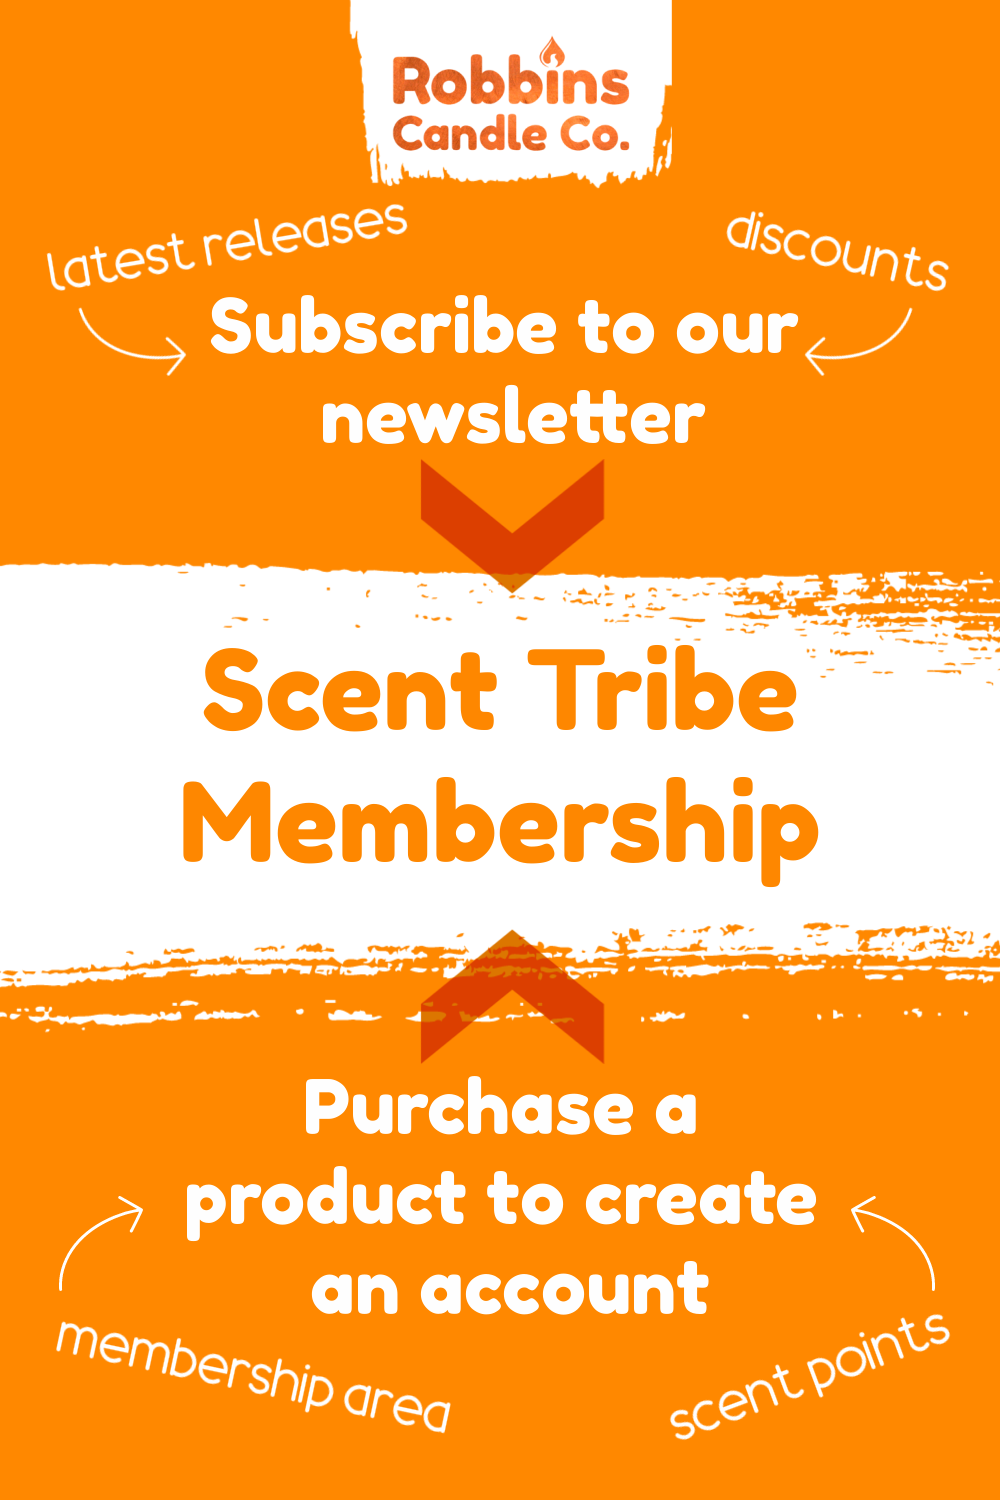 The Scent Tribe